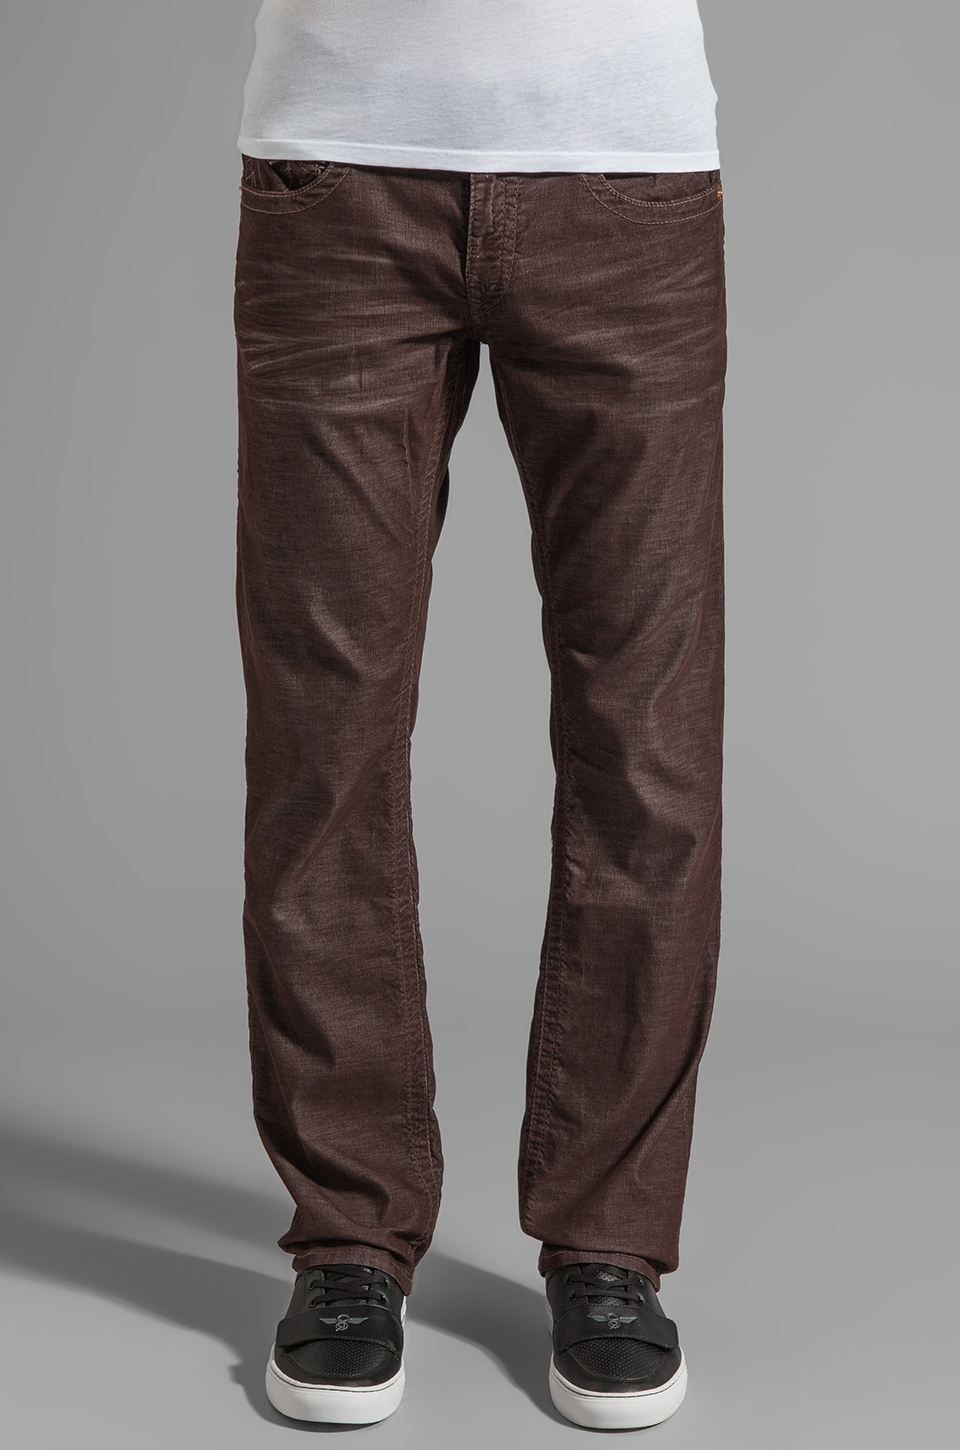 True Religion Ricky Corduroy Classics in Brown